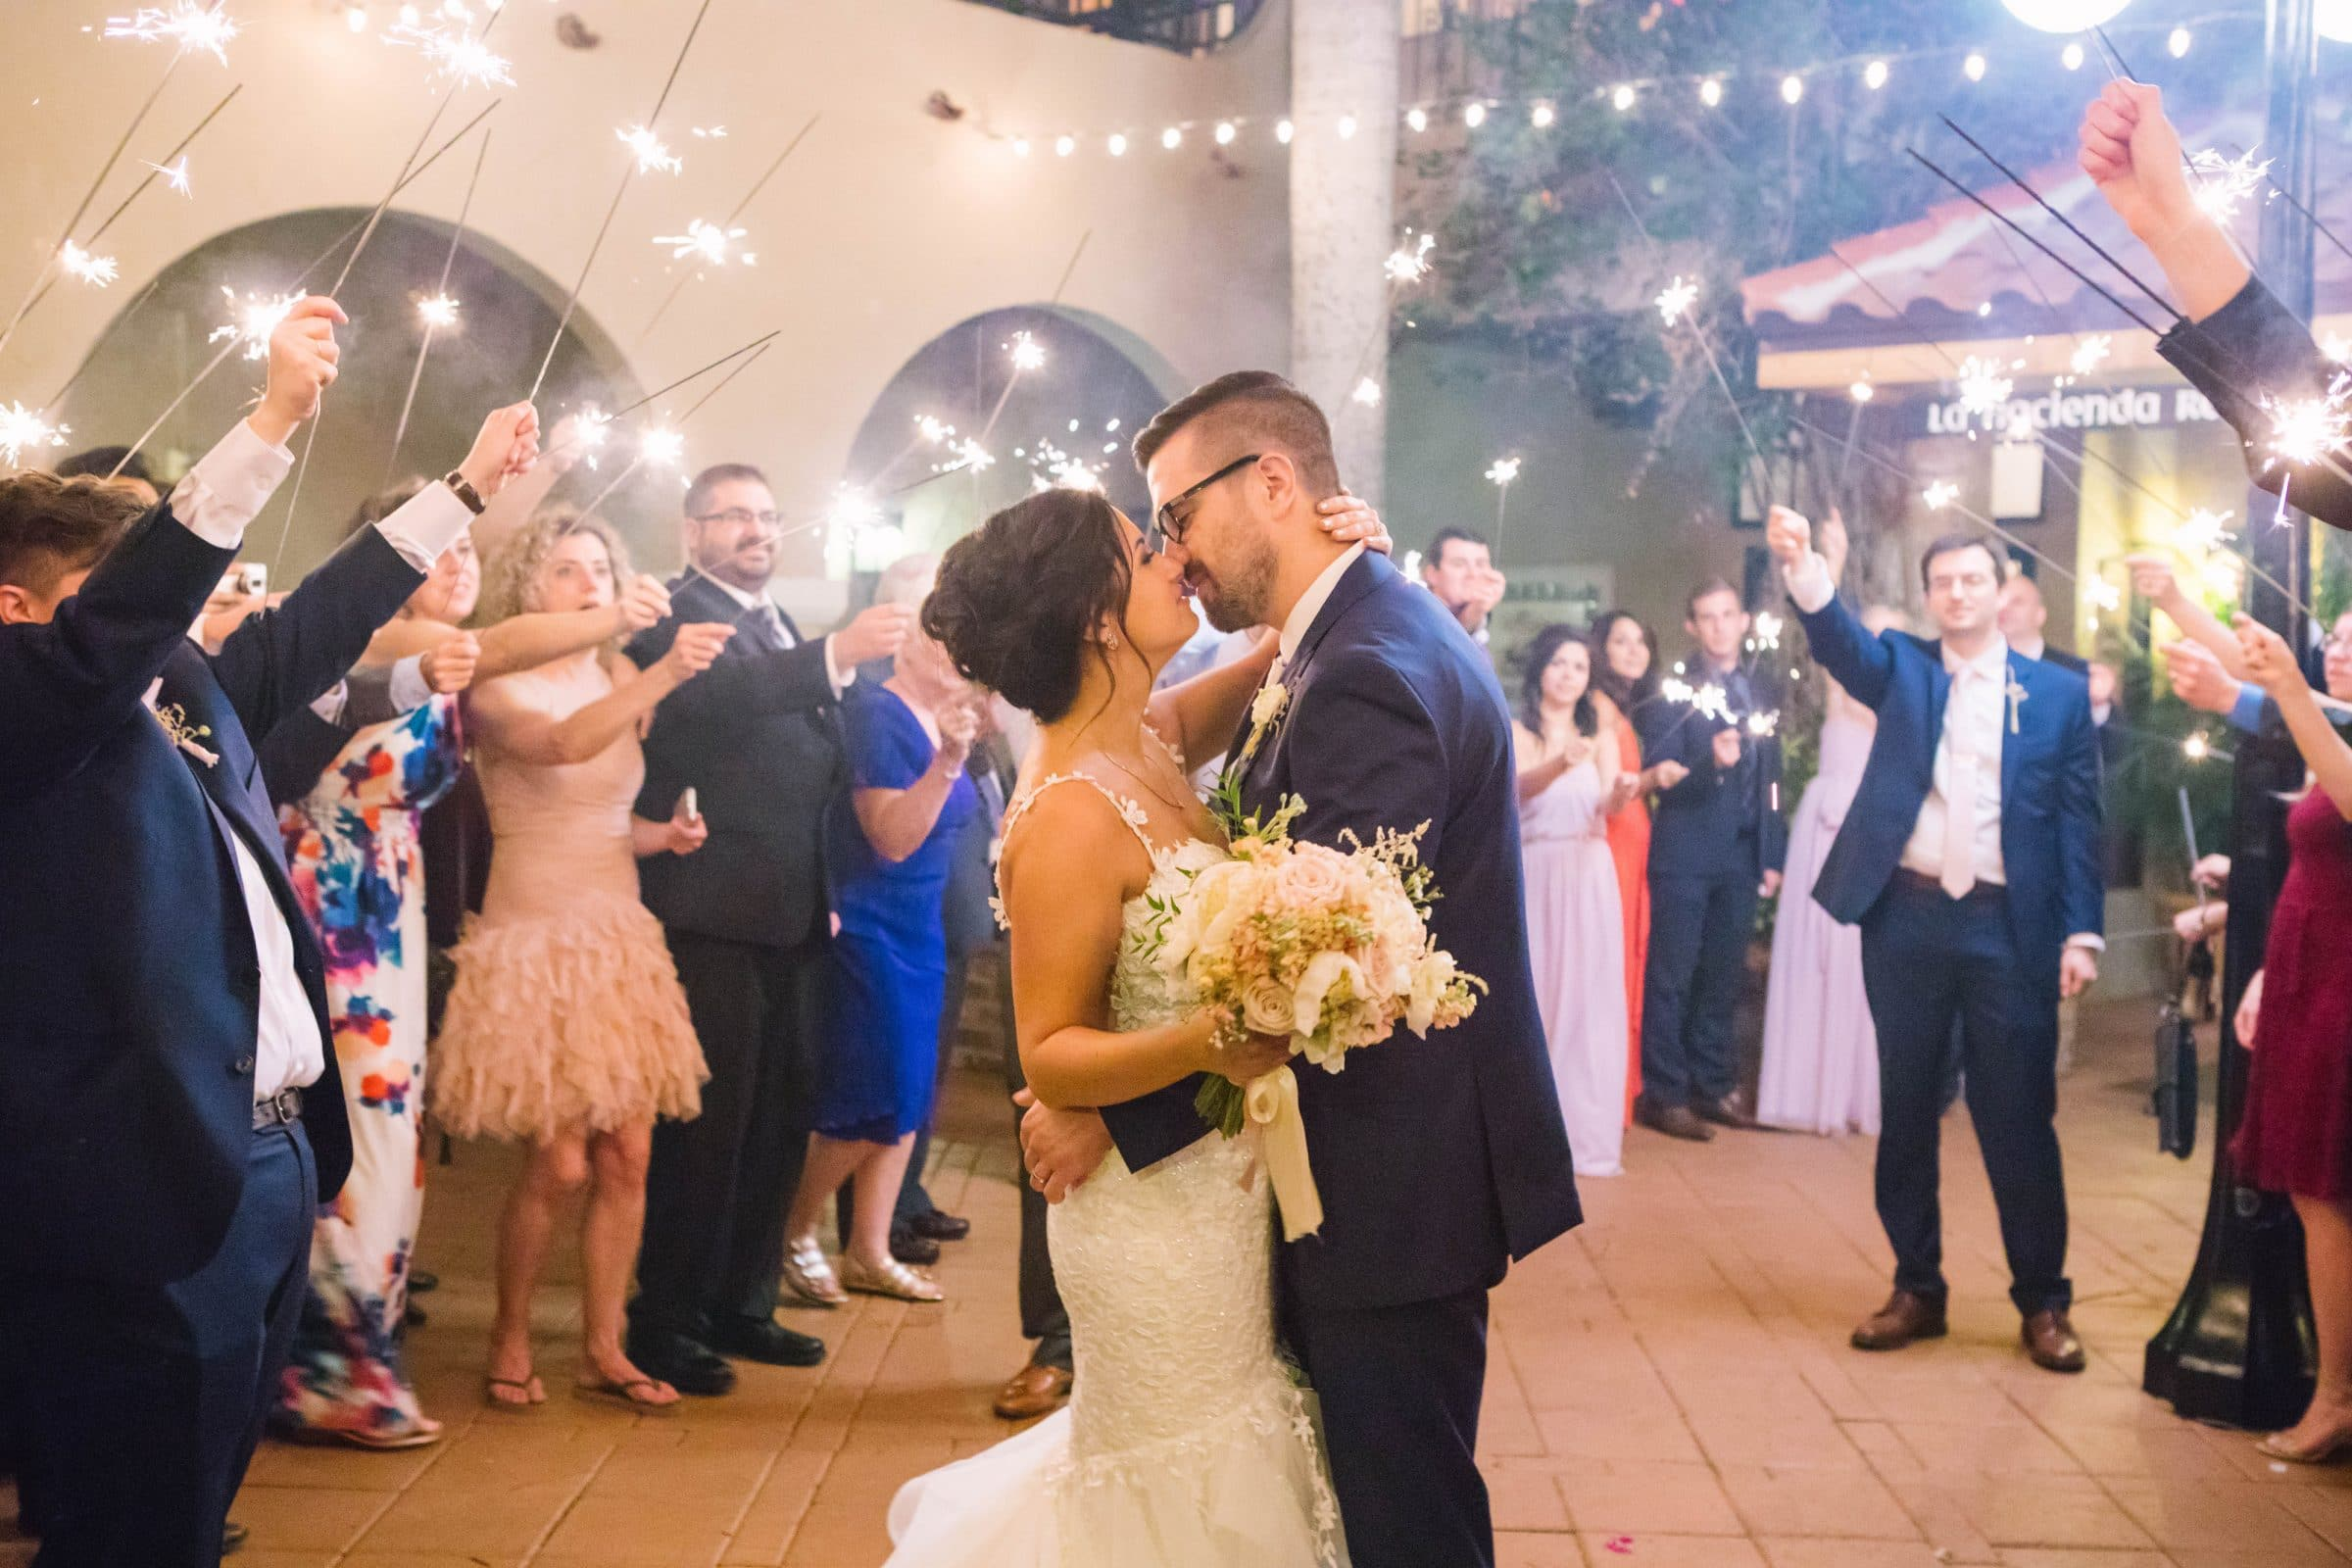 Bride and groom kissing in Spanish courtyard during sparkler sendoff